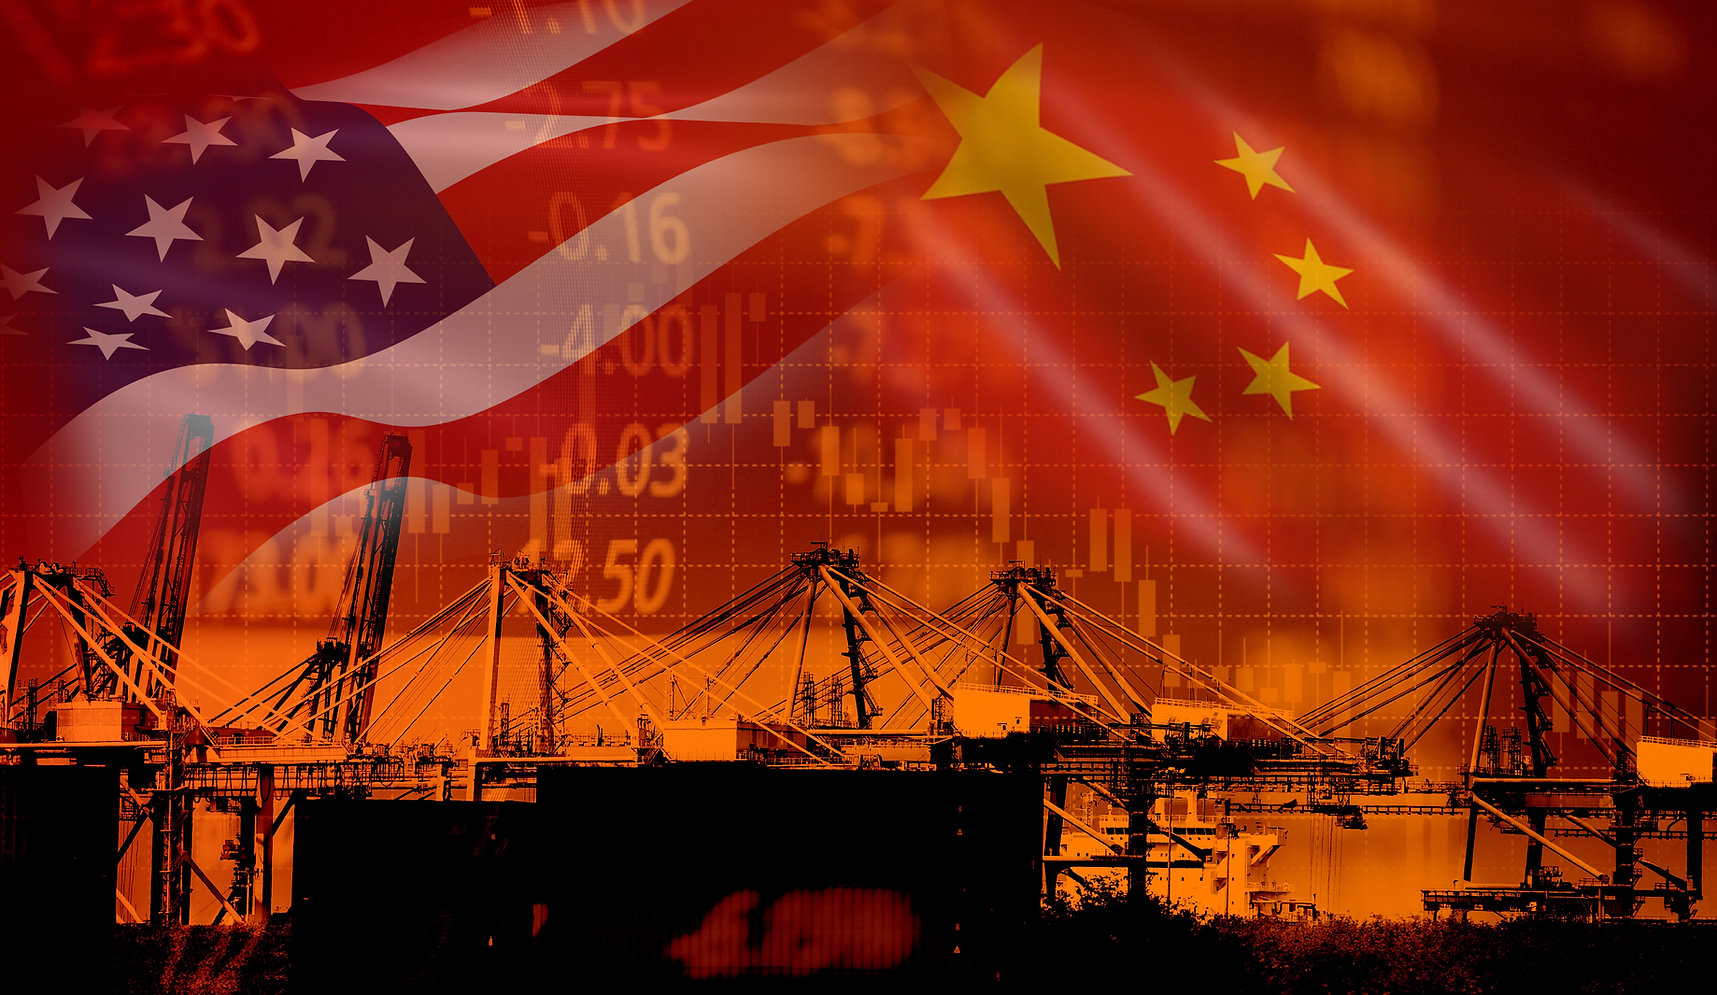 USA and China trade war economy conflict